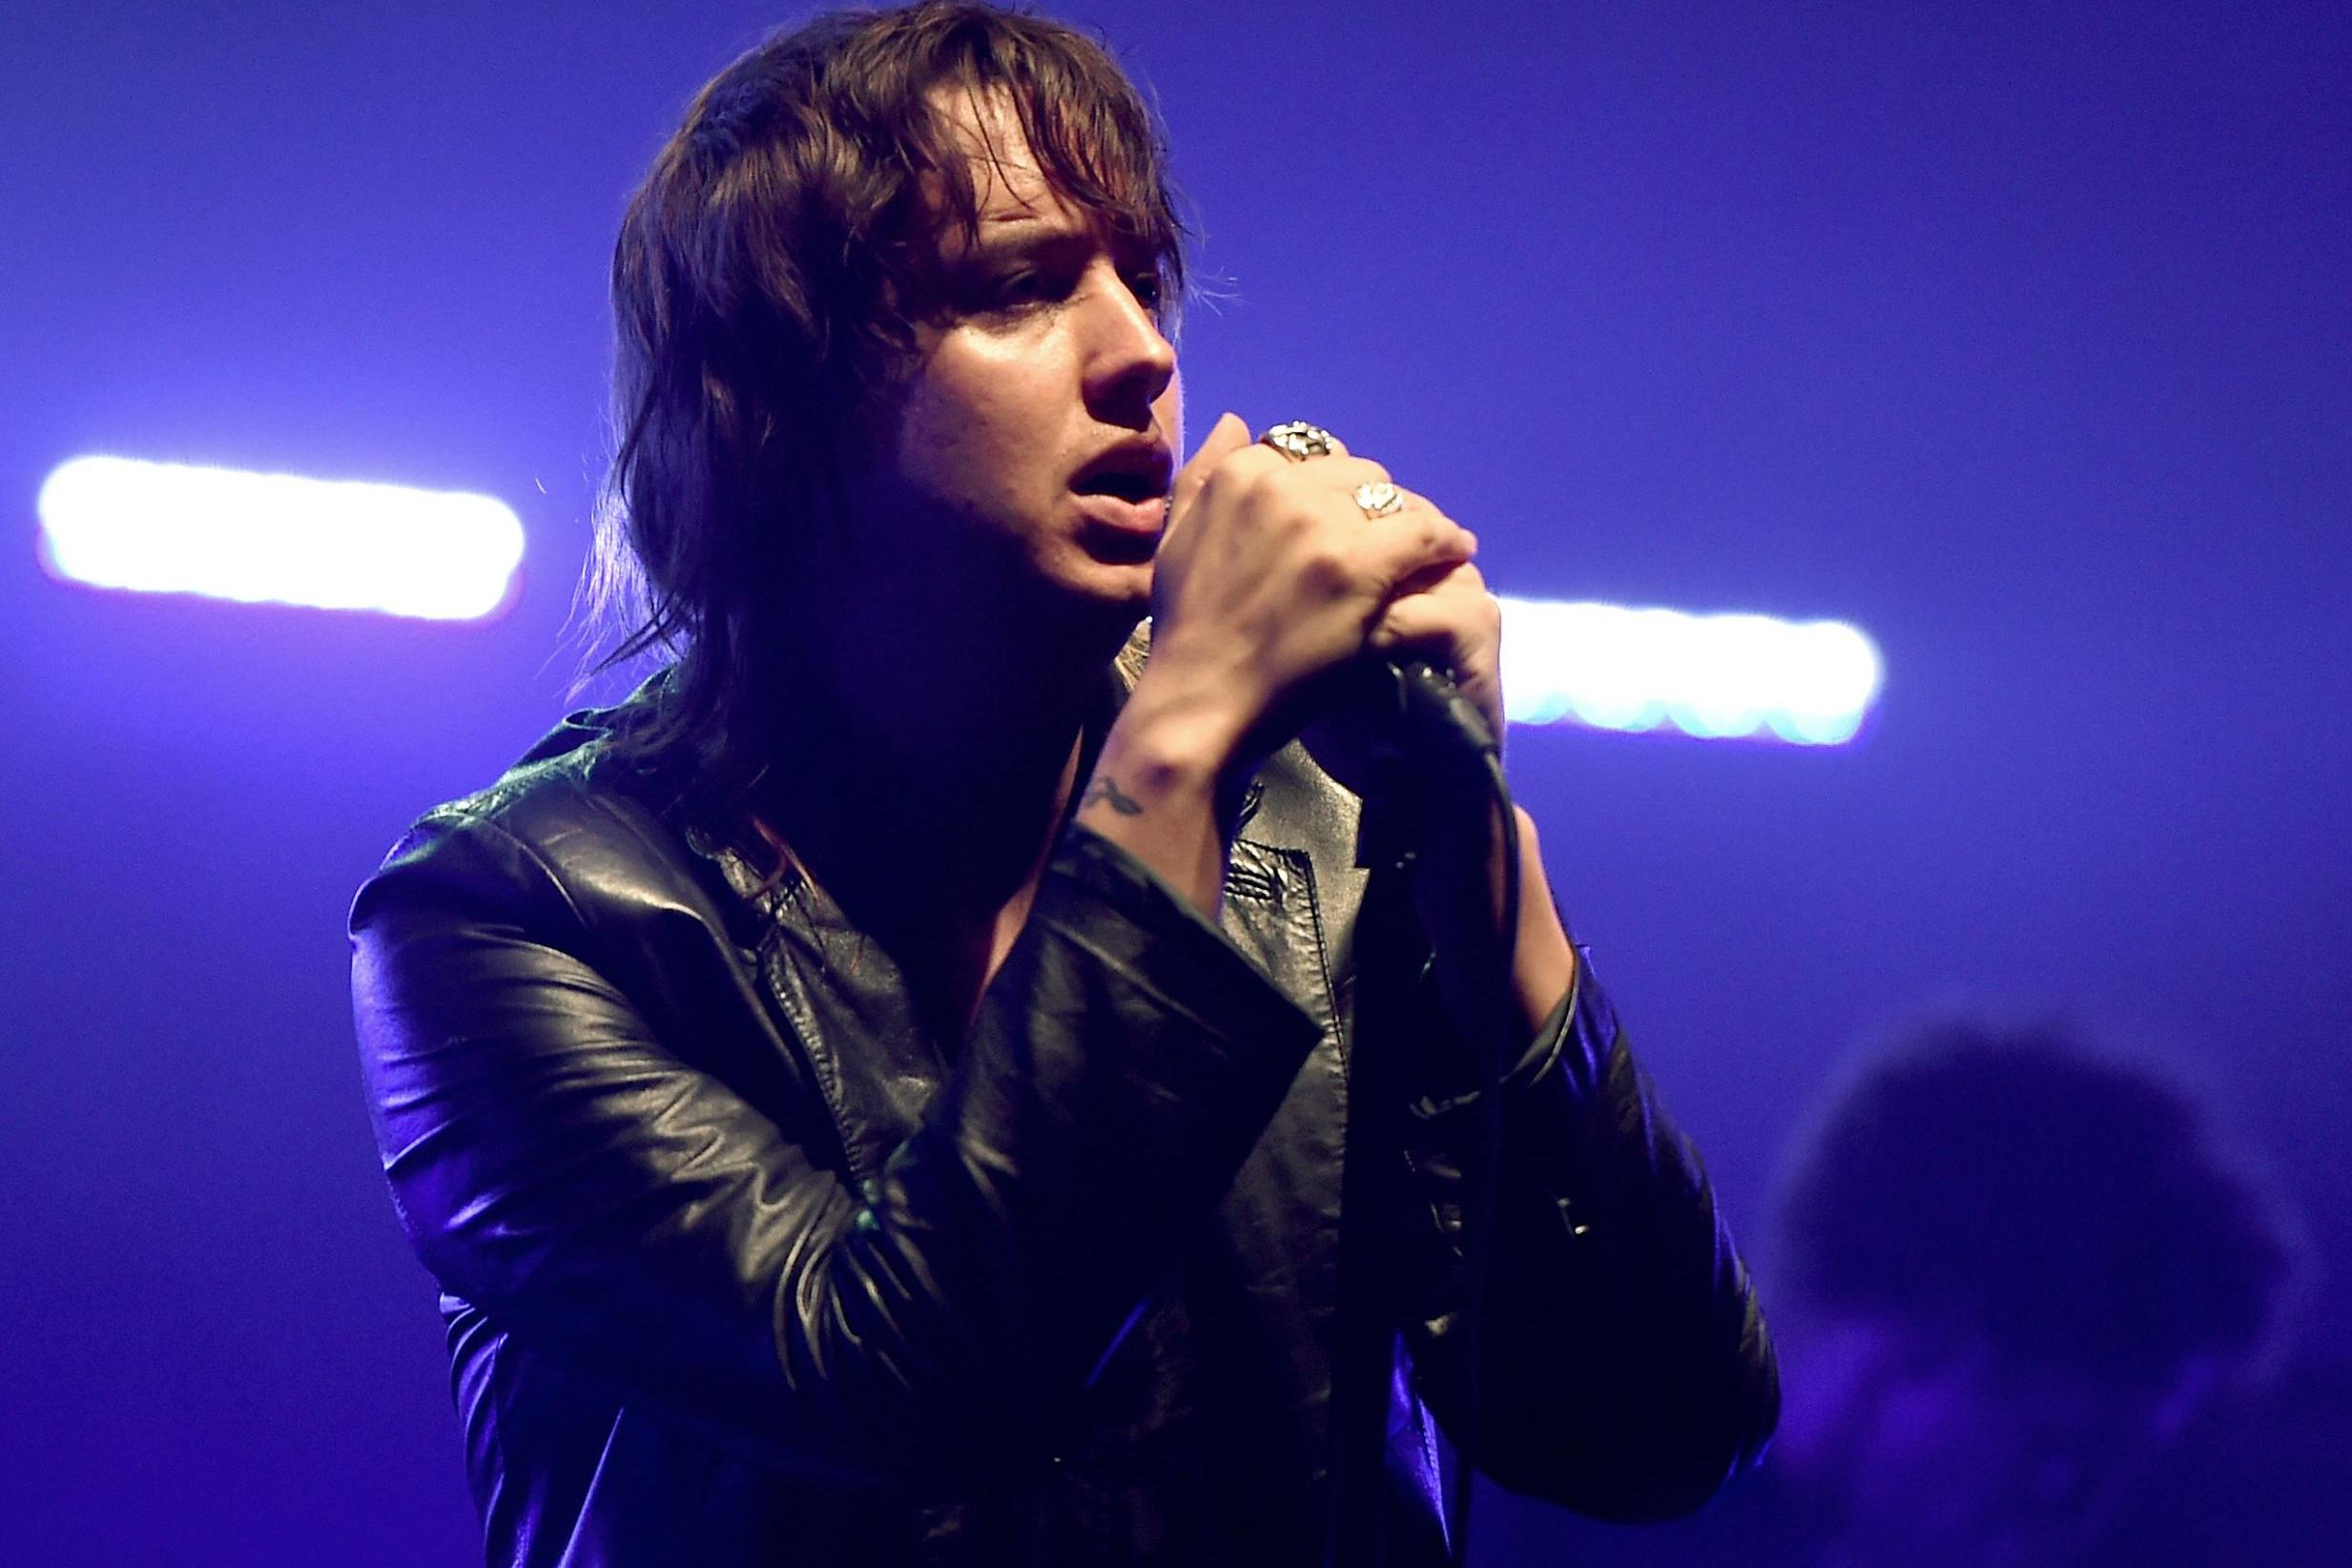 The Strokes 2019 concert: How to get tickets for the 'global comeback'